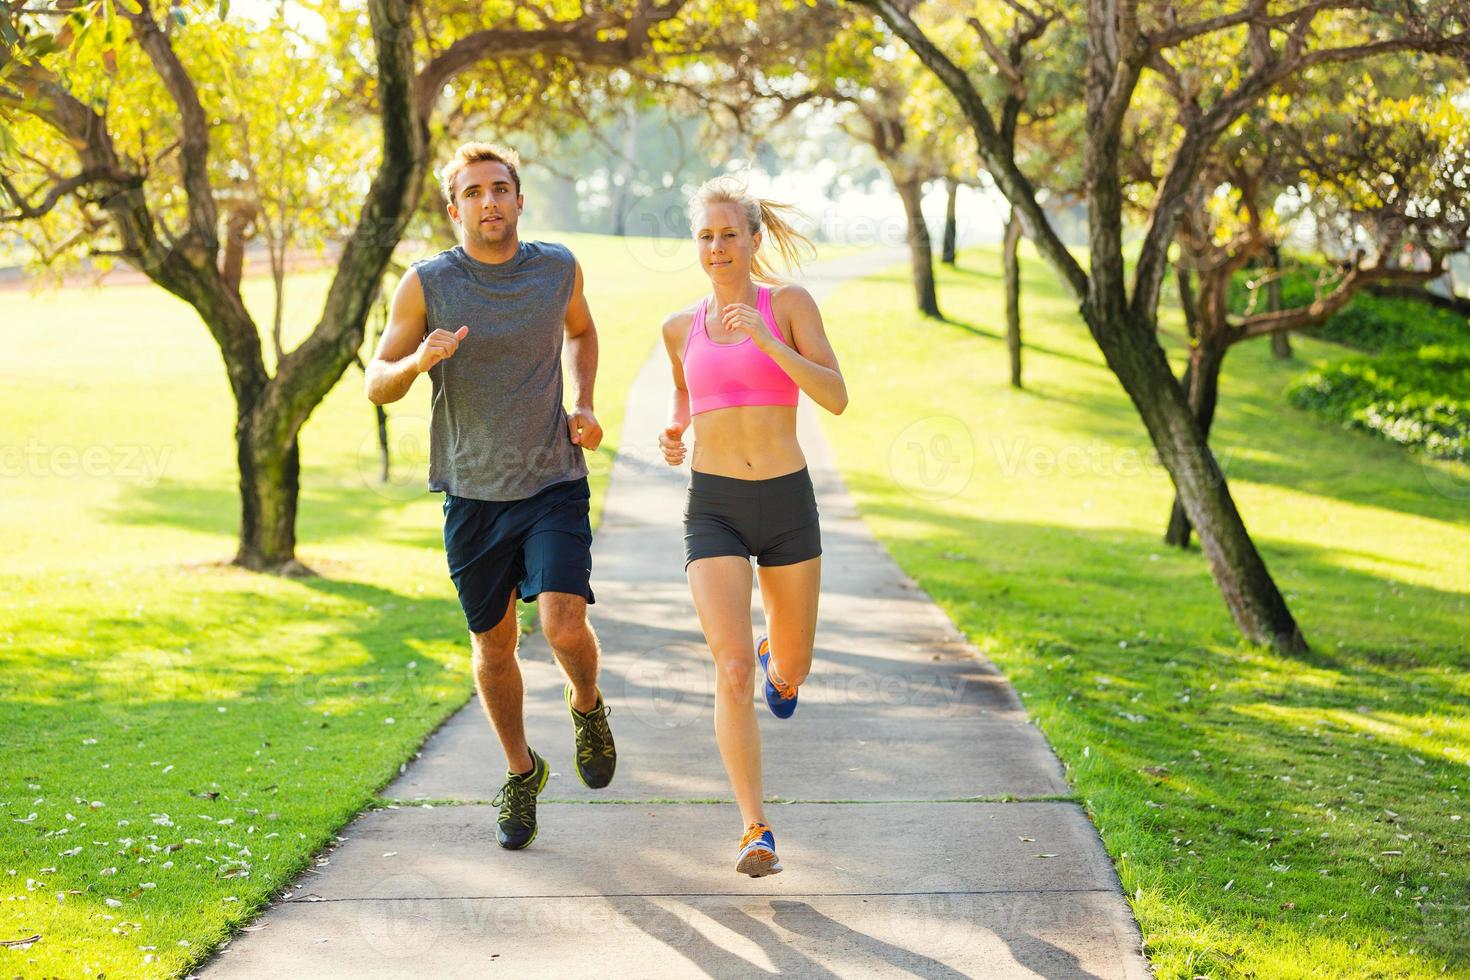 Couple running together in the park photo